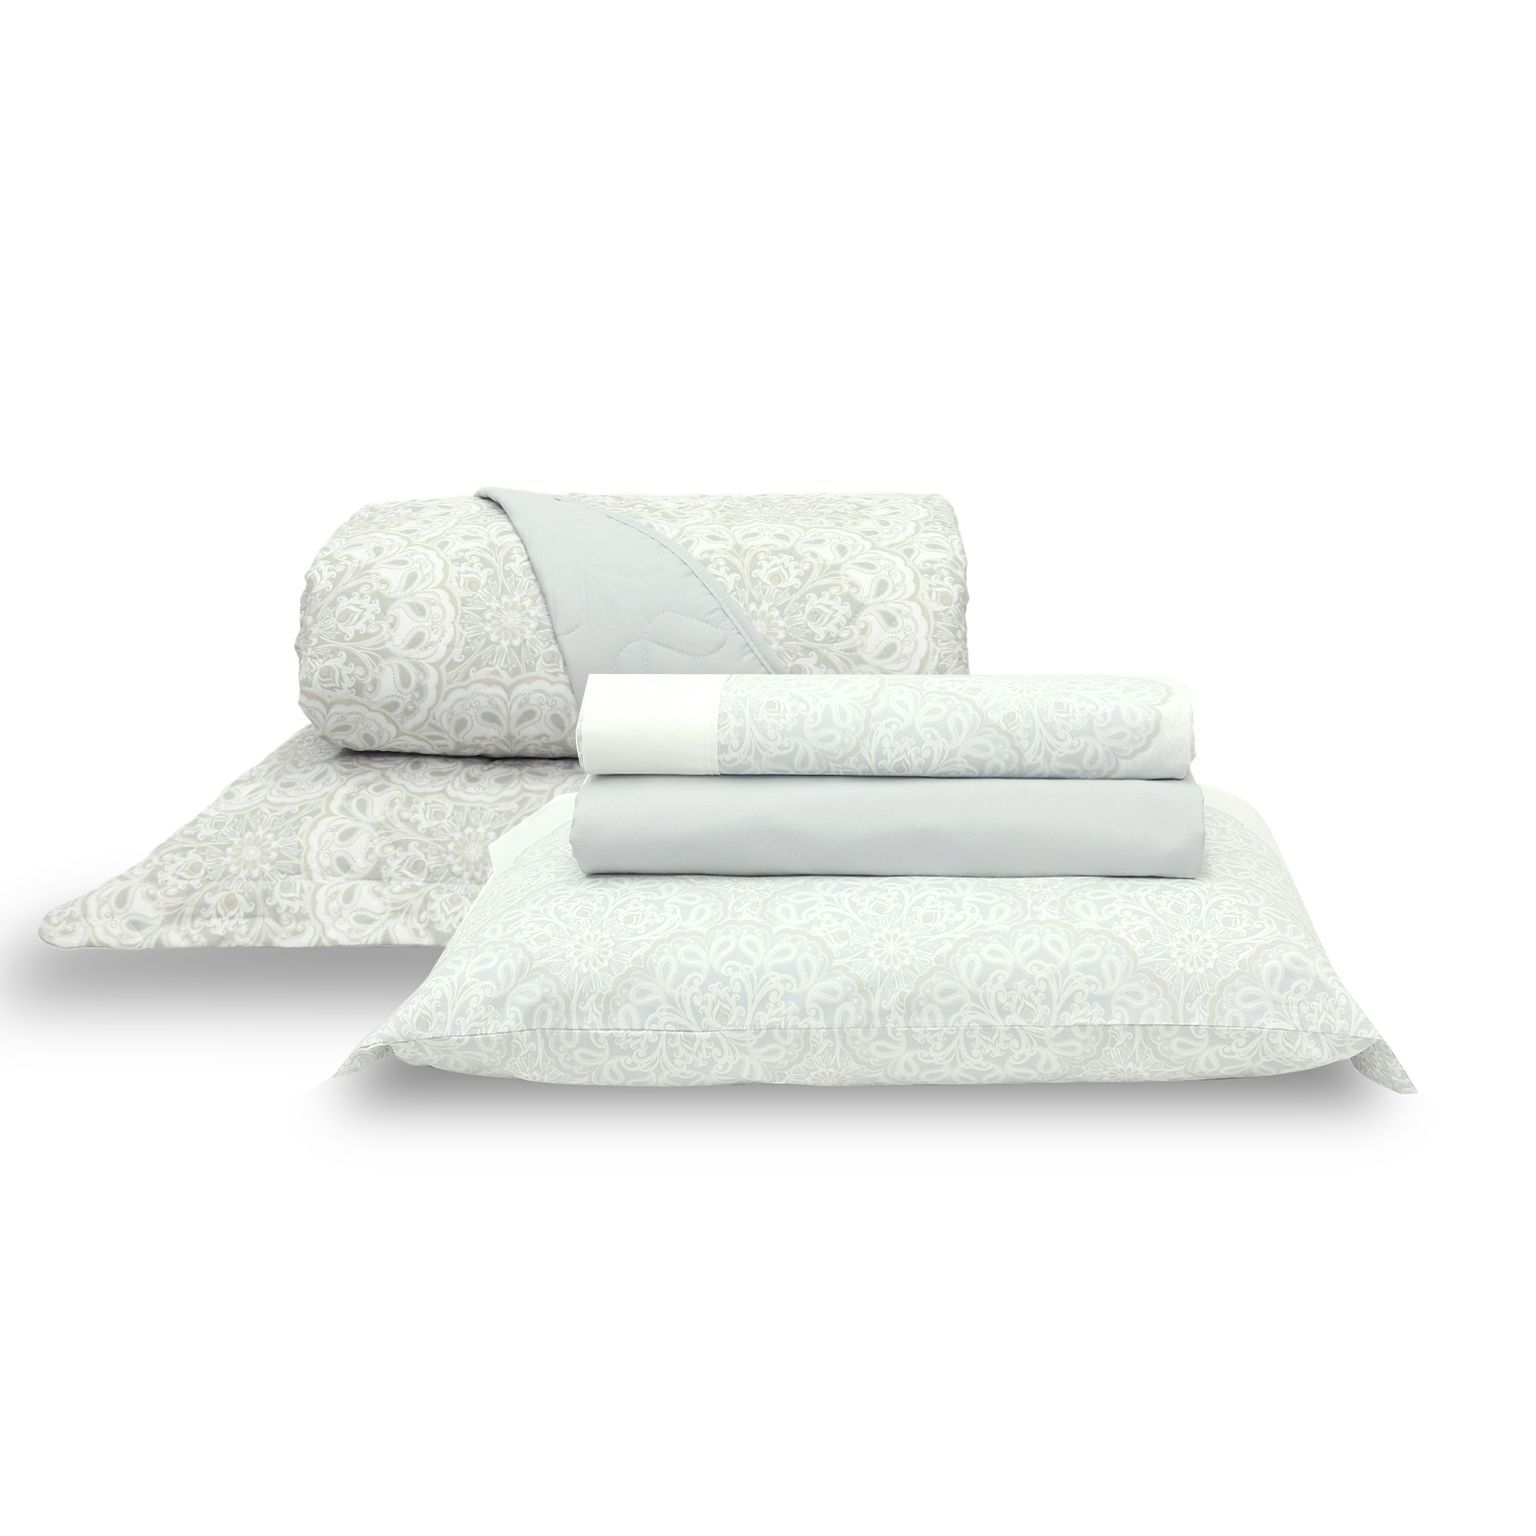 Kit Cama Platinum Thais